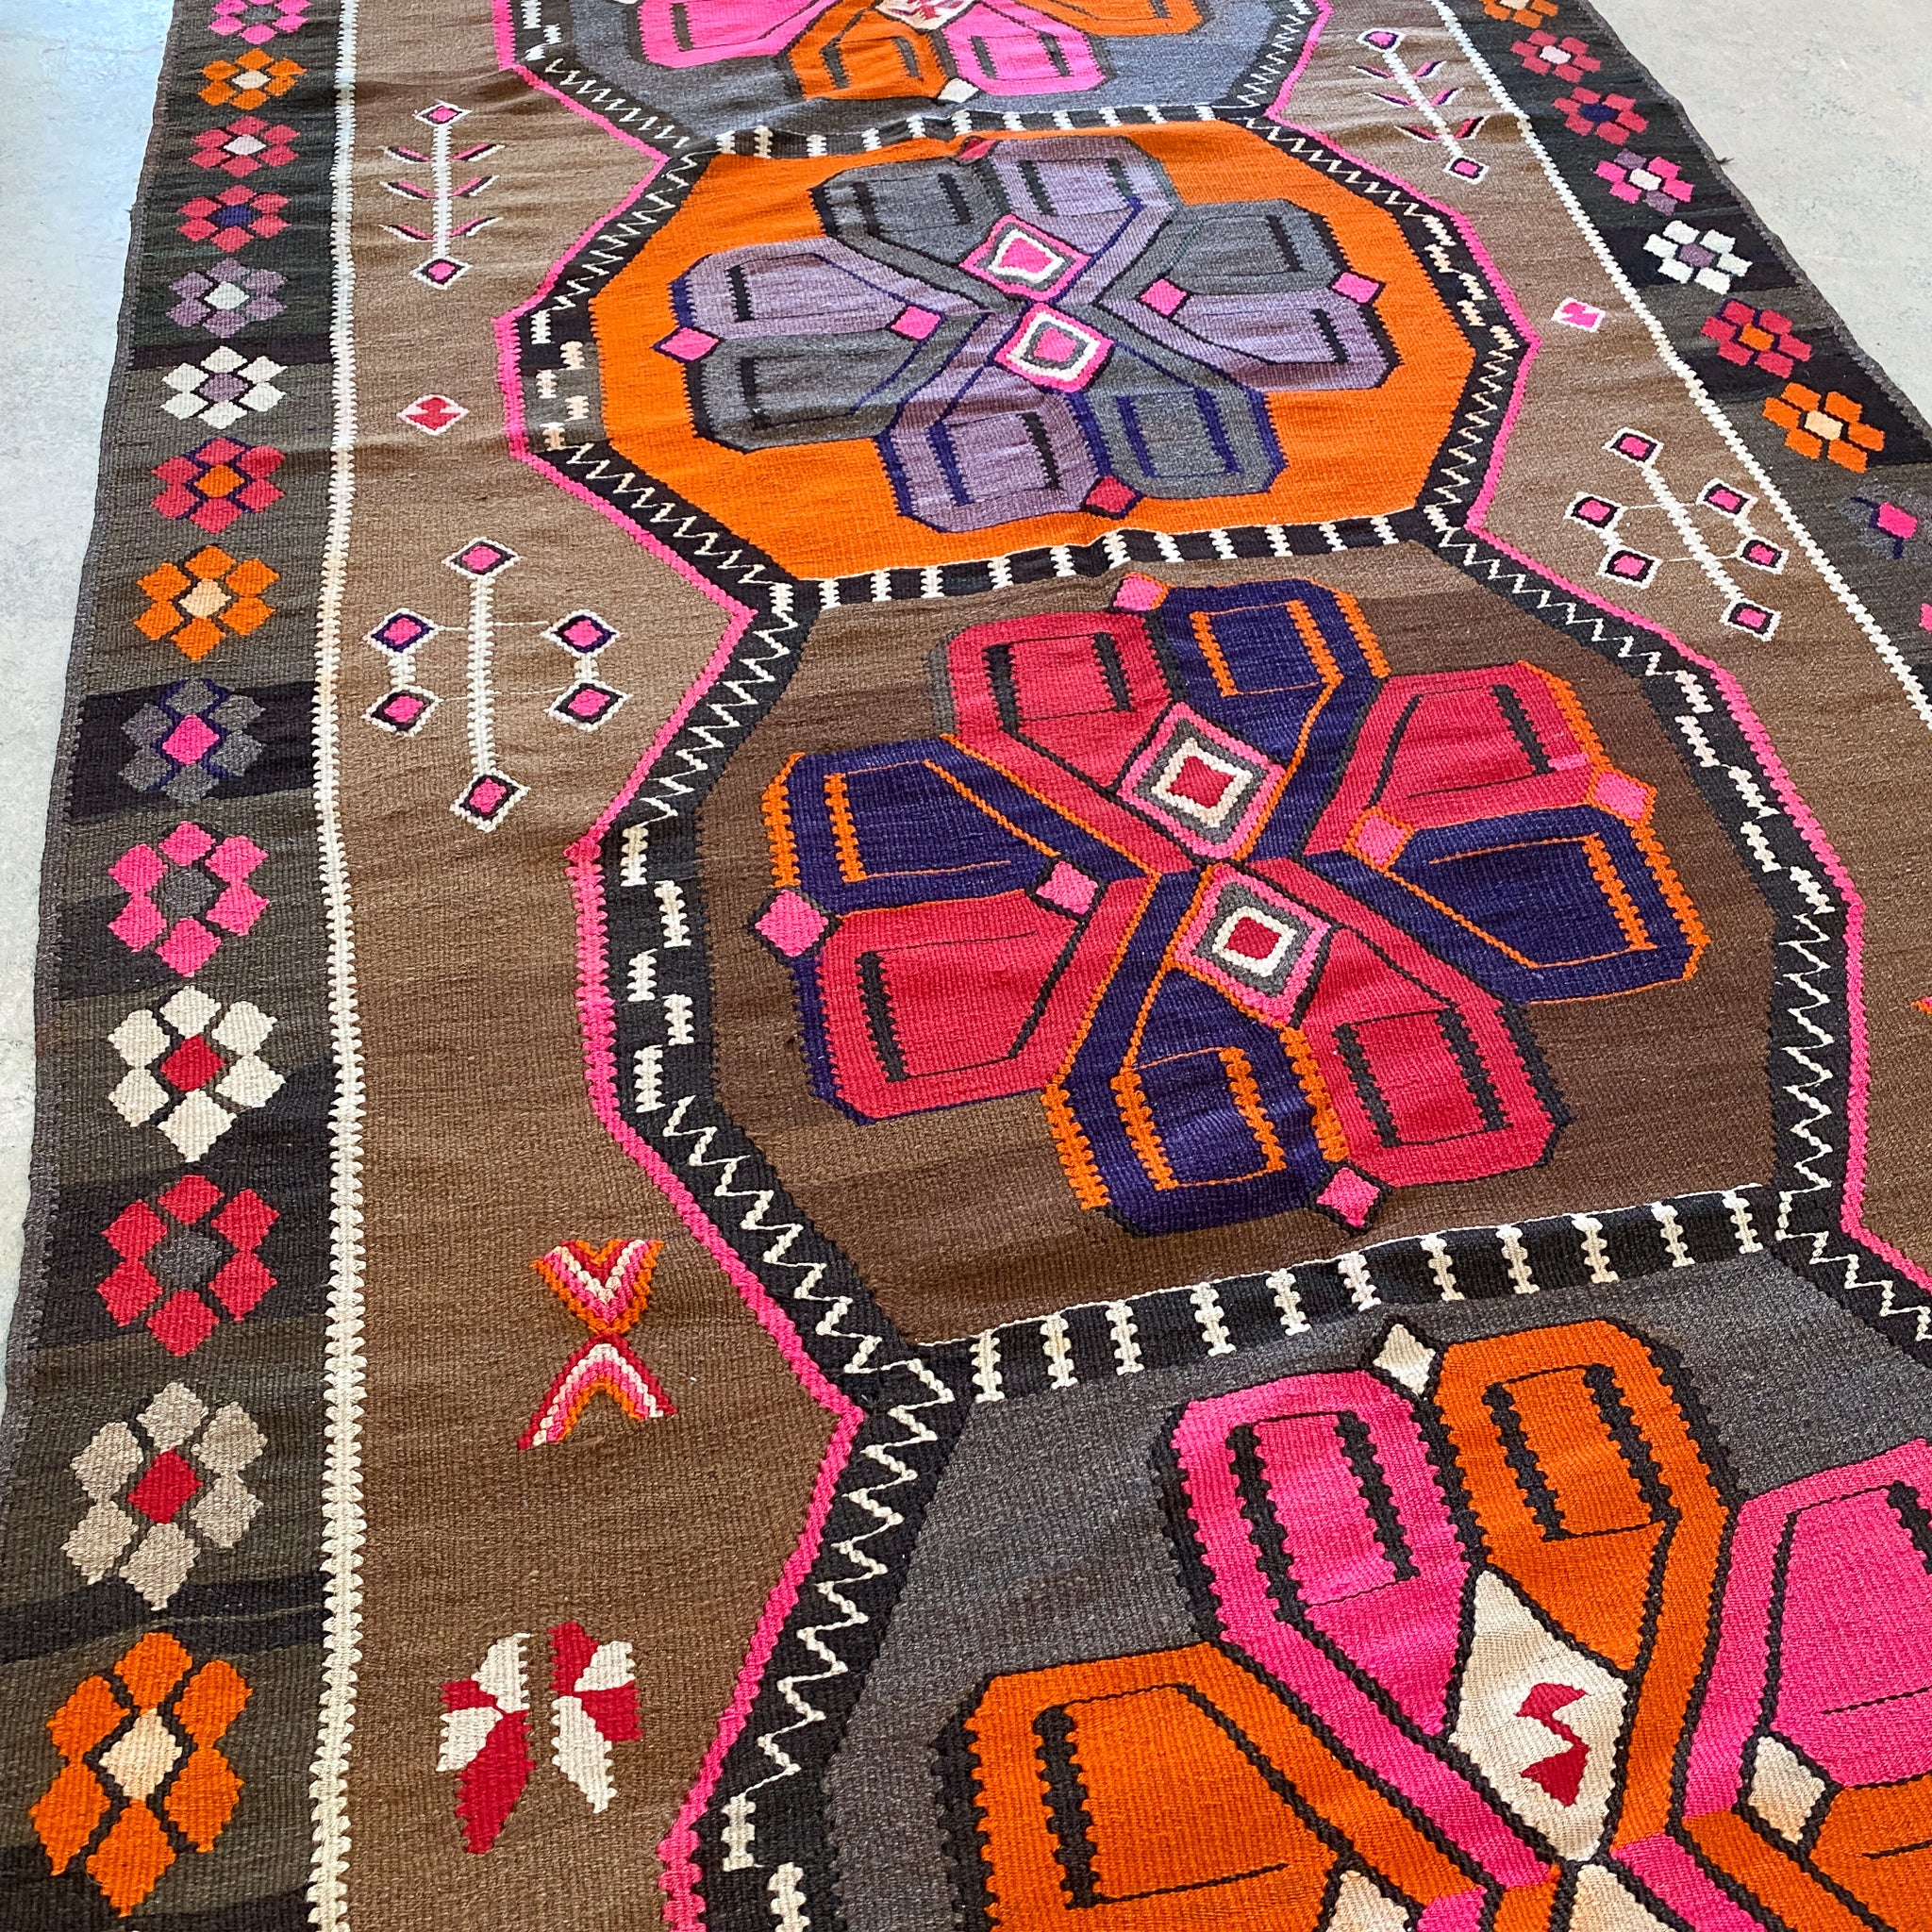 ON HOLD 2592 Handwoven Vintage Rug 5'7x12'10